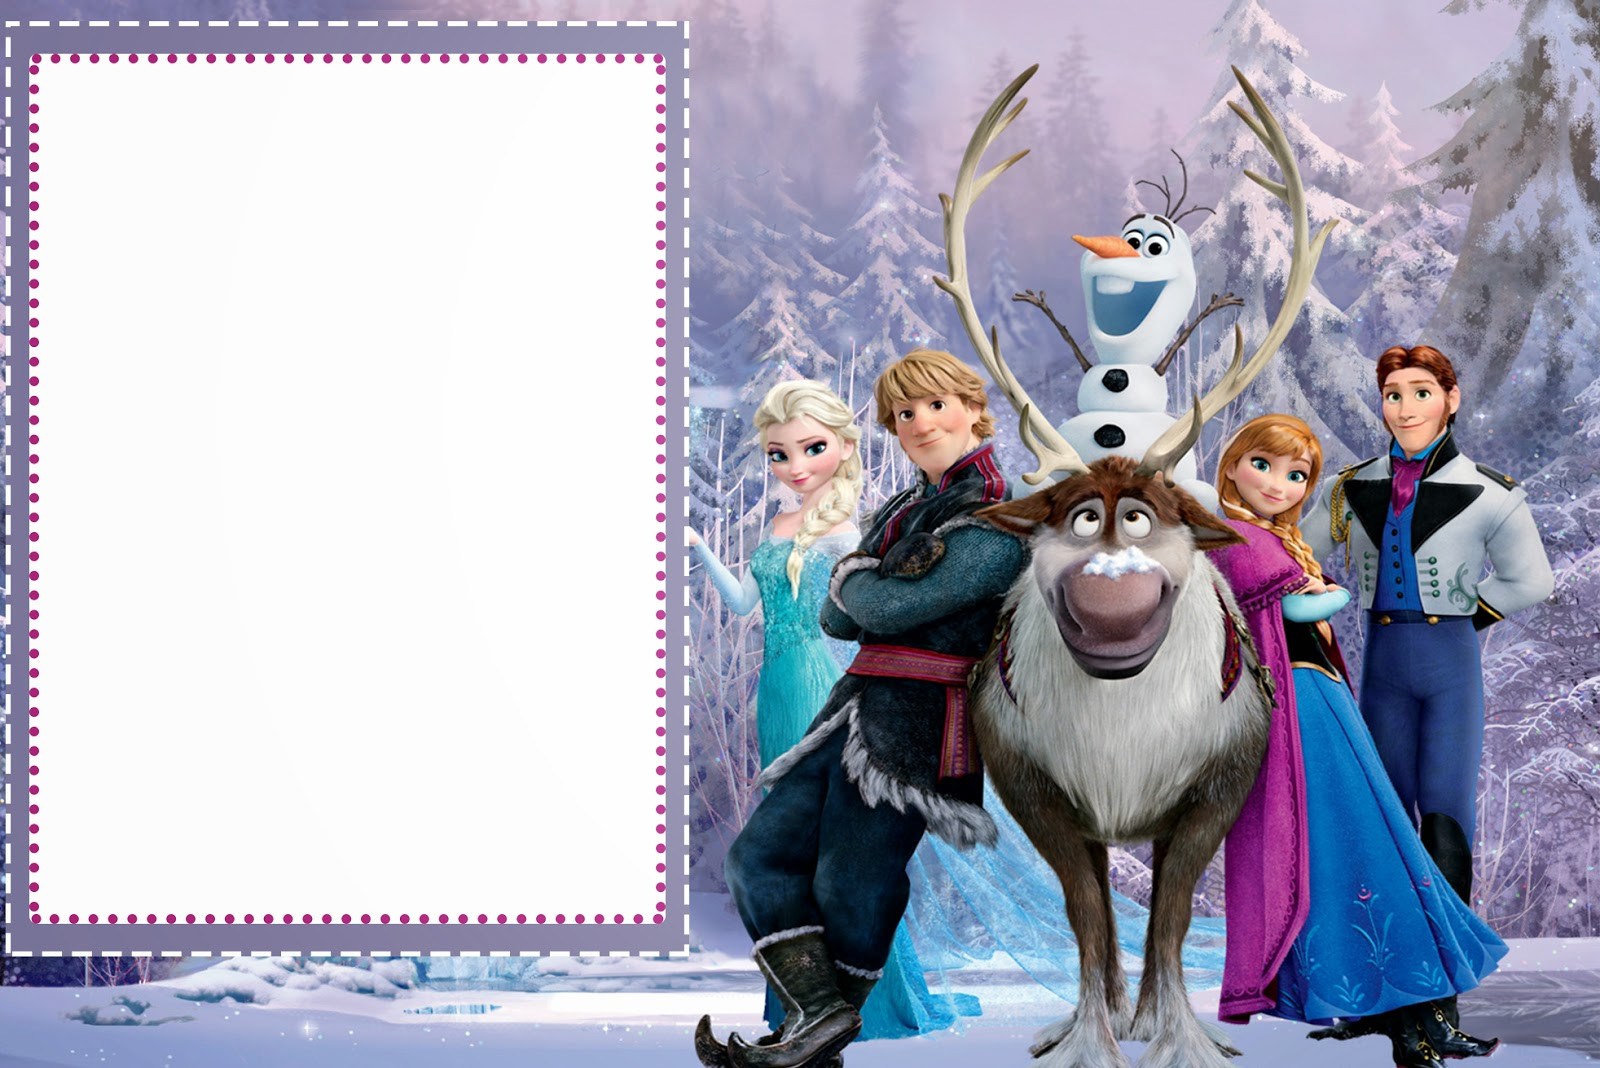 Frozen Printable Birthday Invitations Frozen Free Printable Cards or Party Invitations Oh My